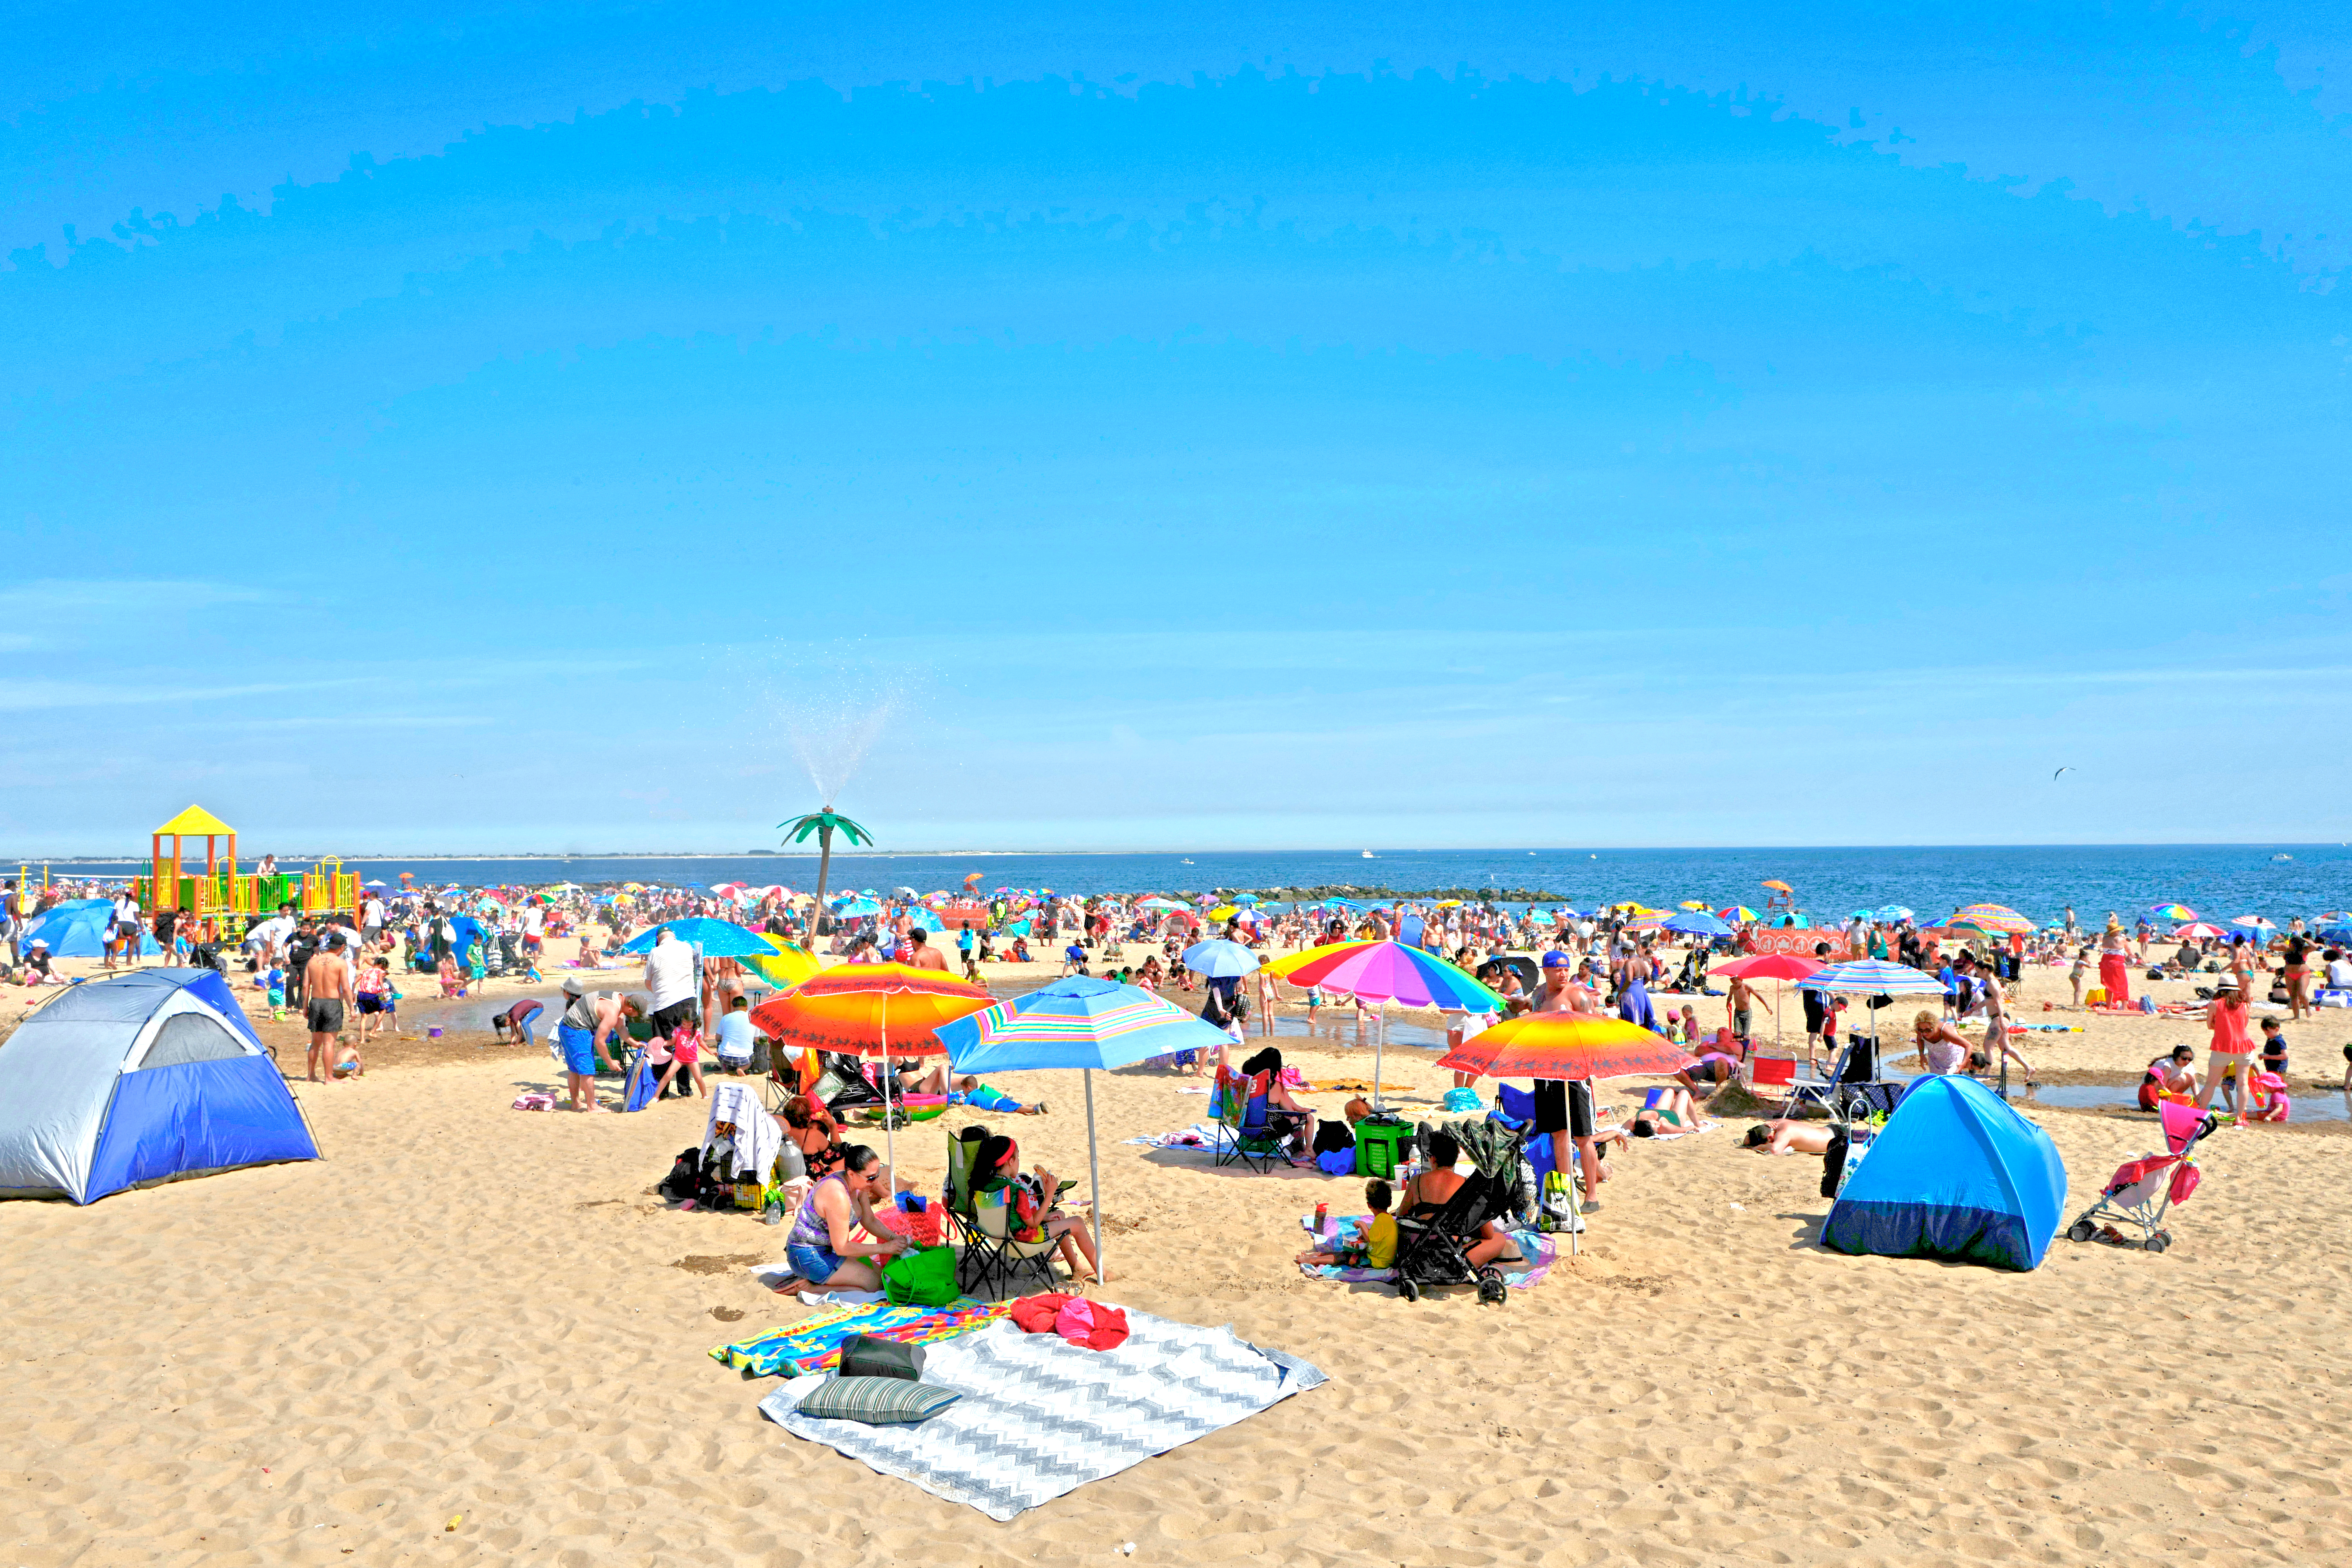 A sandy beach. Many people are on the beach and there are colorful umbrellas and tents. The ocean is in the distance.